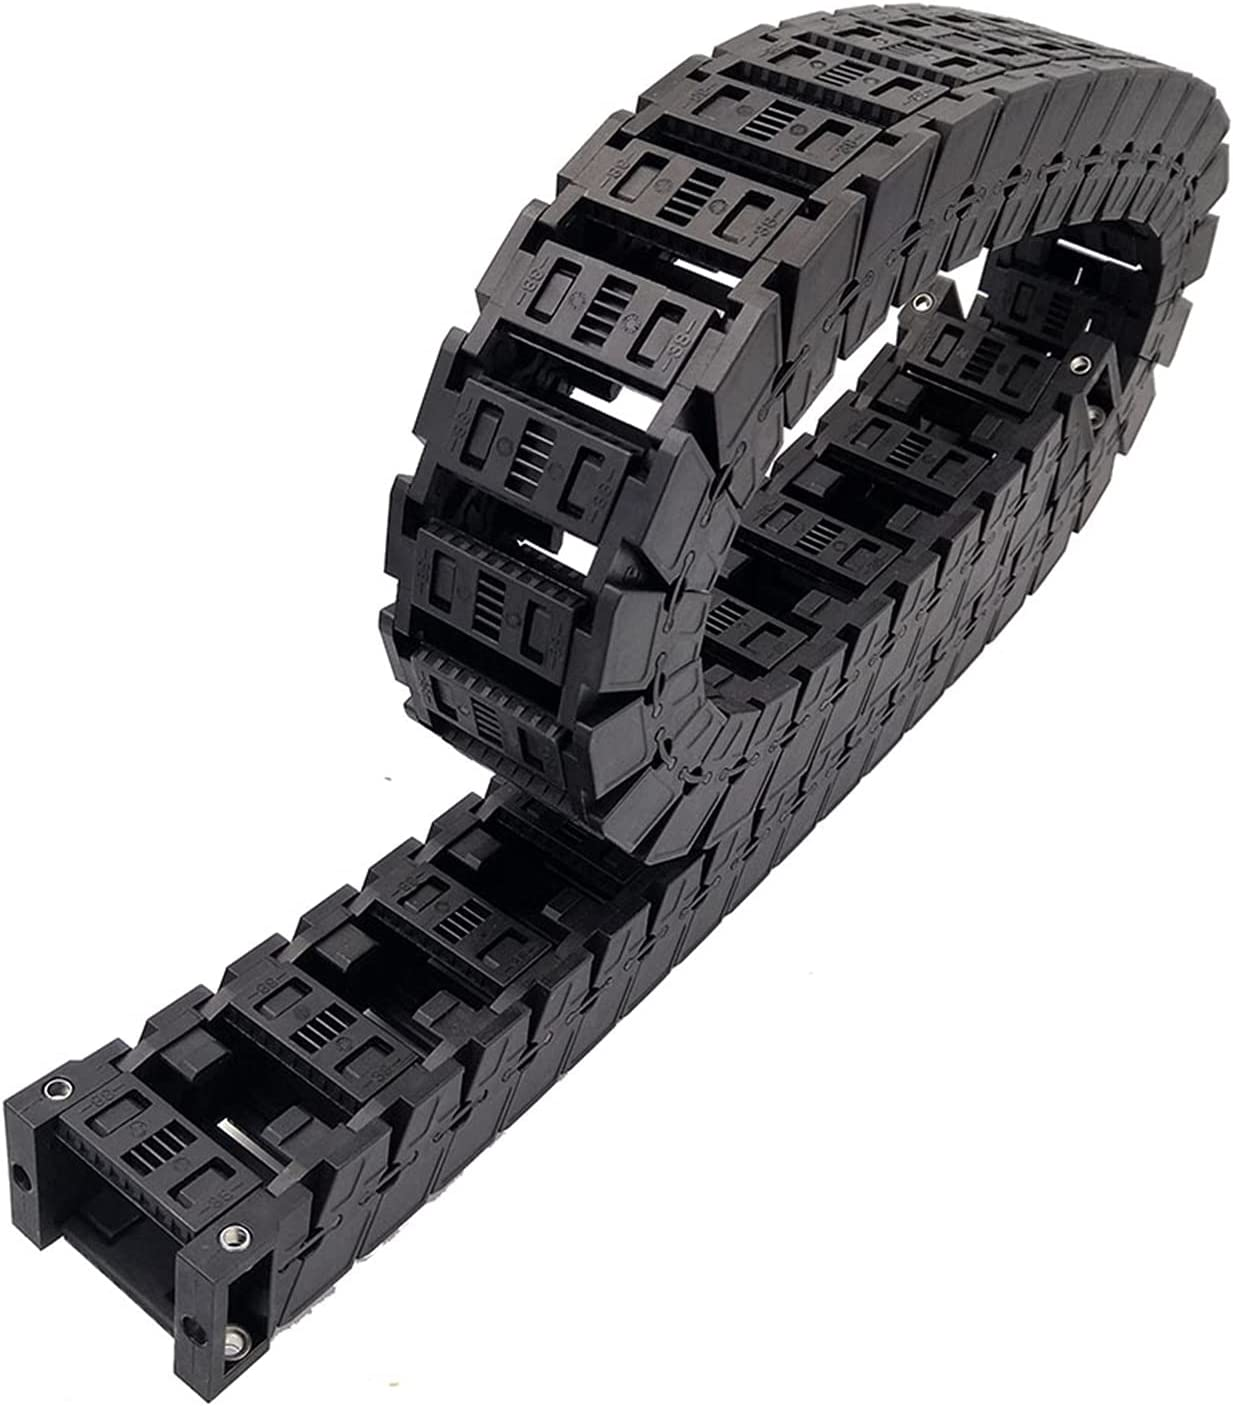 LJLWX Cable Transmission Drag Chain S25x103mm 1 Meter High-Speed